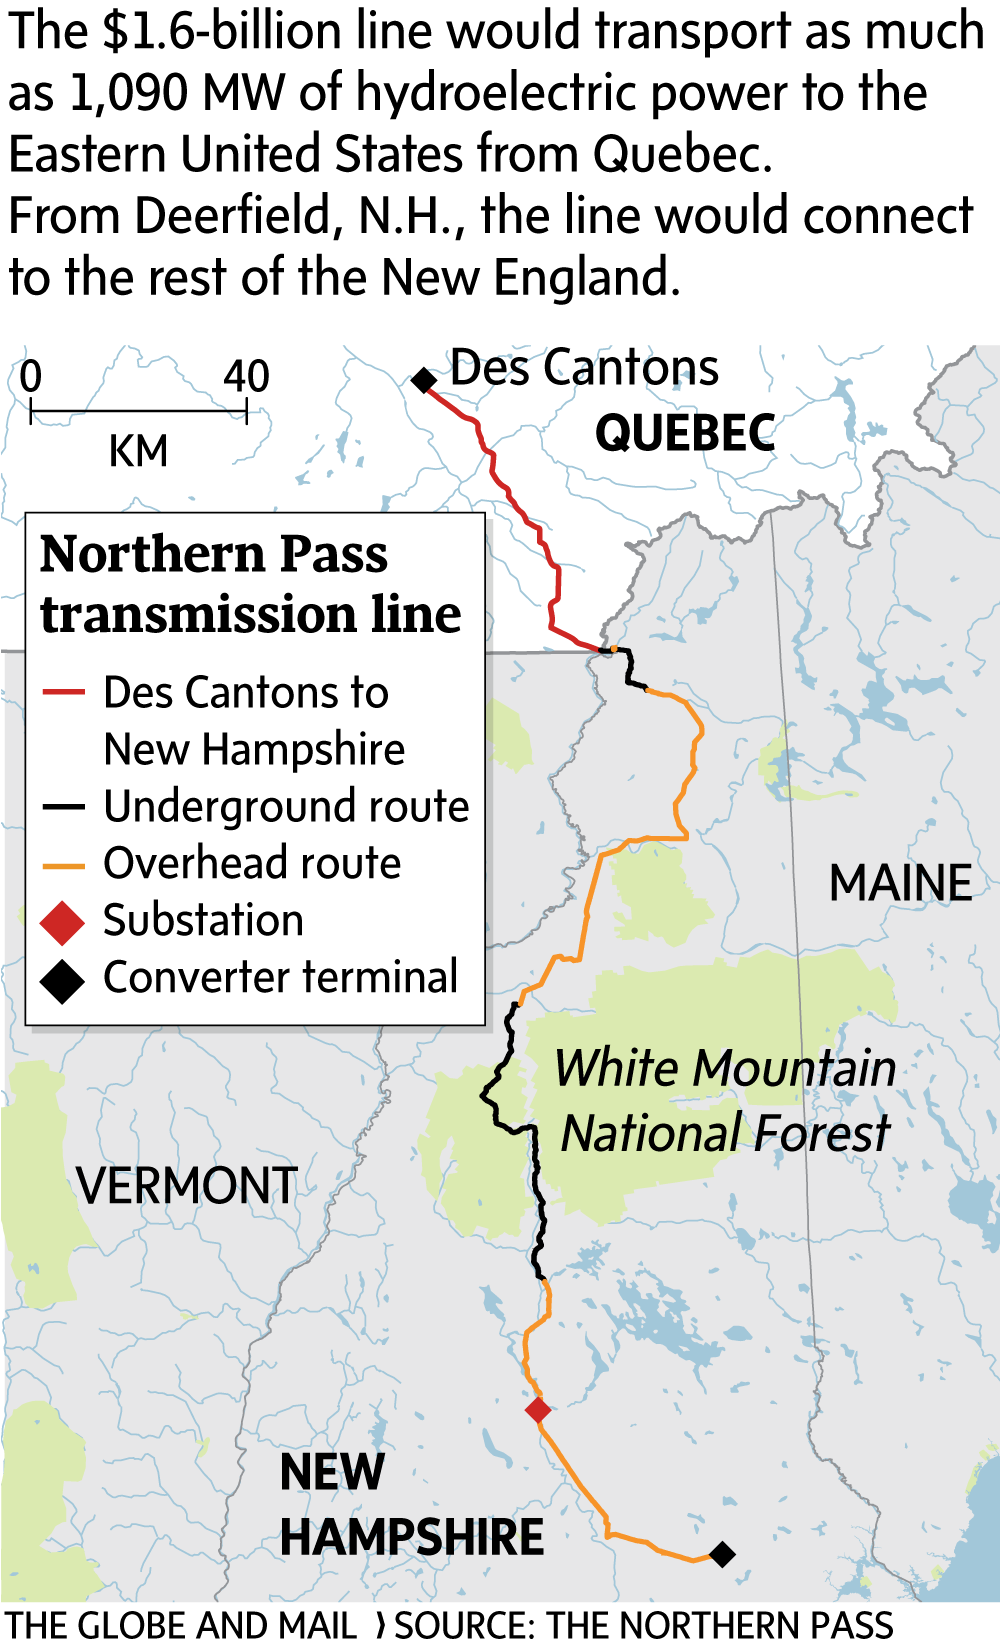 Map Of New England And Quebec.New England Lobby Group Attacks Bid By Hydro Quebec To Sell Power In